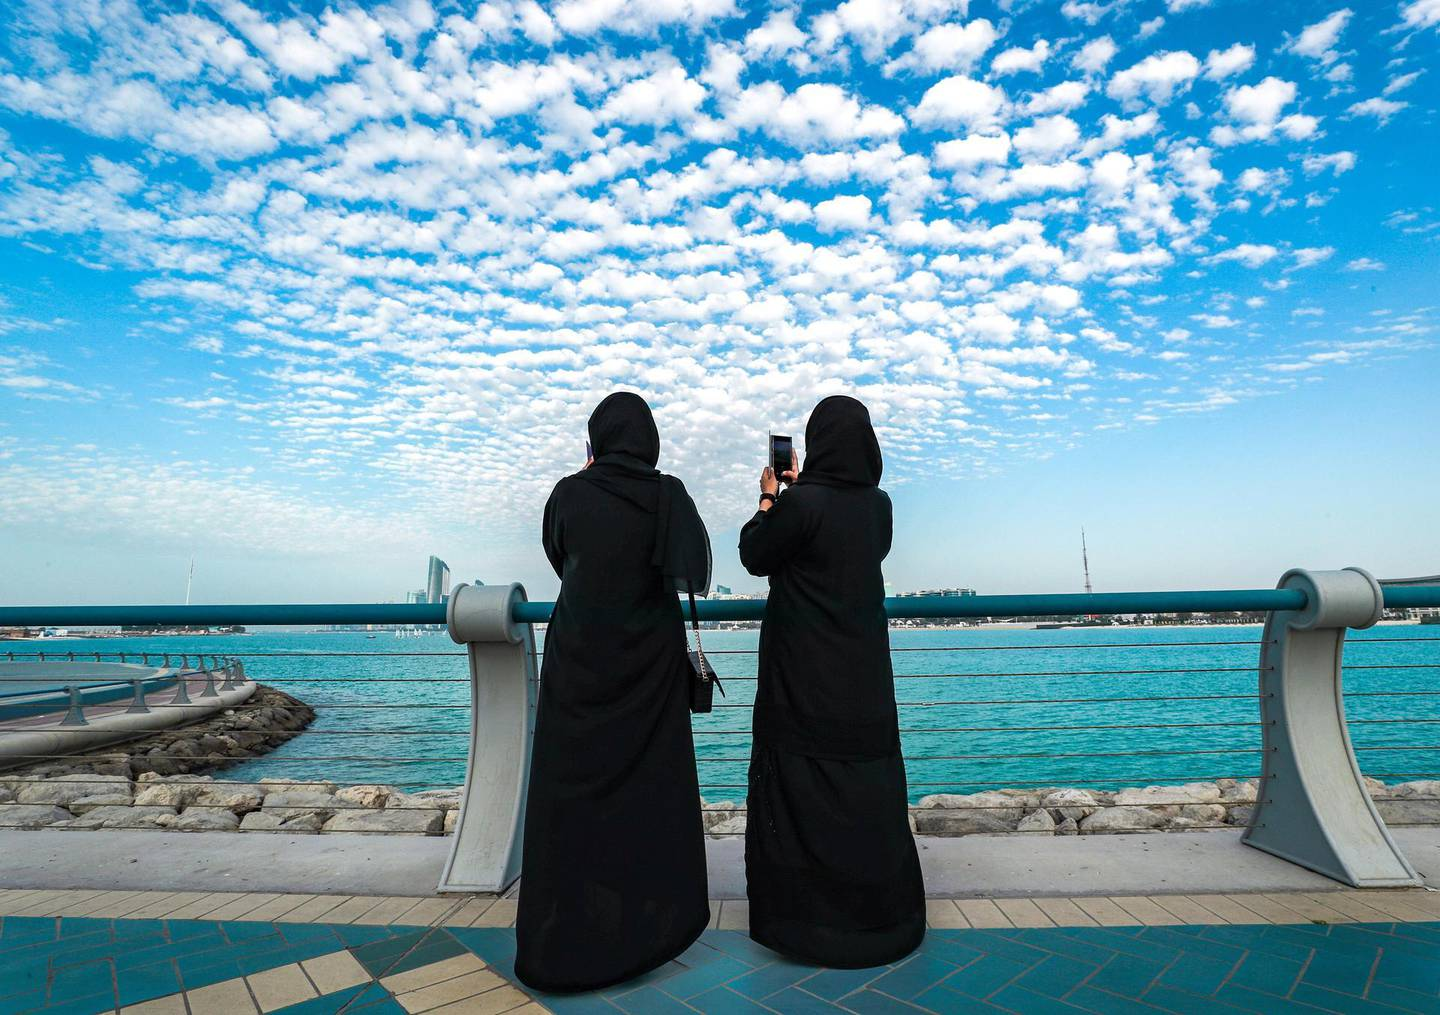 Abu Dhabi, United Arab Emirates, March 3, 2021.  Friends enjoy the view of tiny cotton ball like clouds at the Corniche before sunset.  Victor Besa / The National Section:  NA For:  Big Picture/Stock Images/Standalone